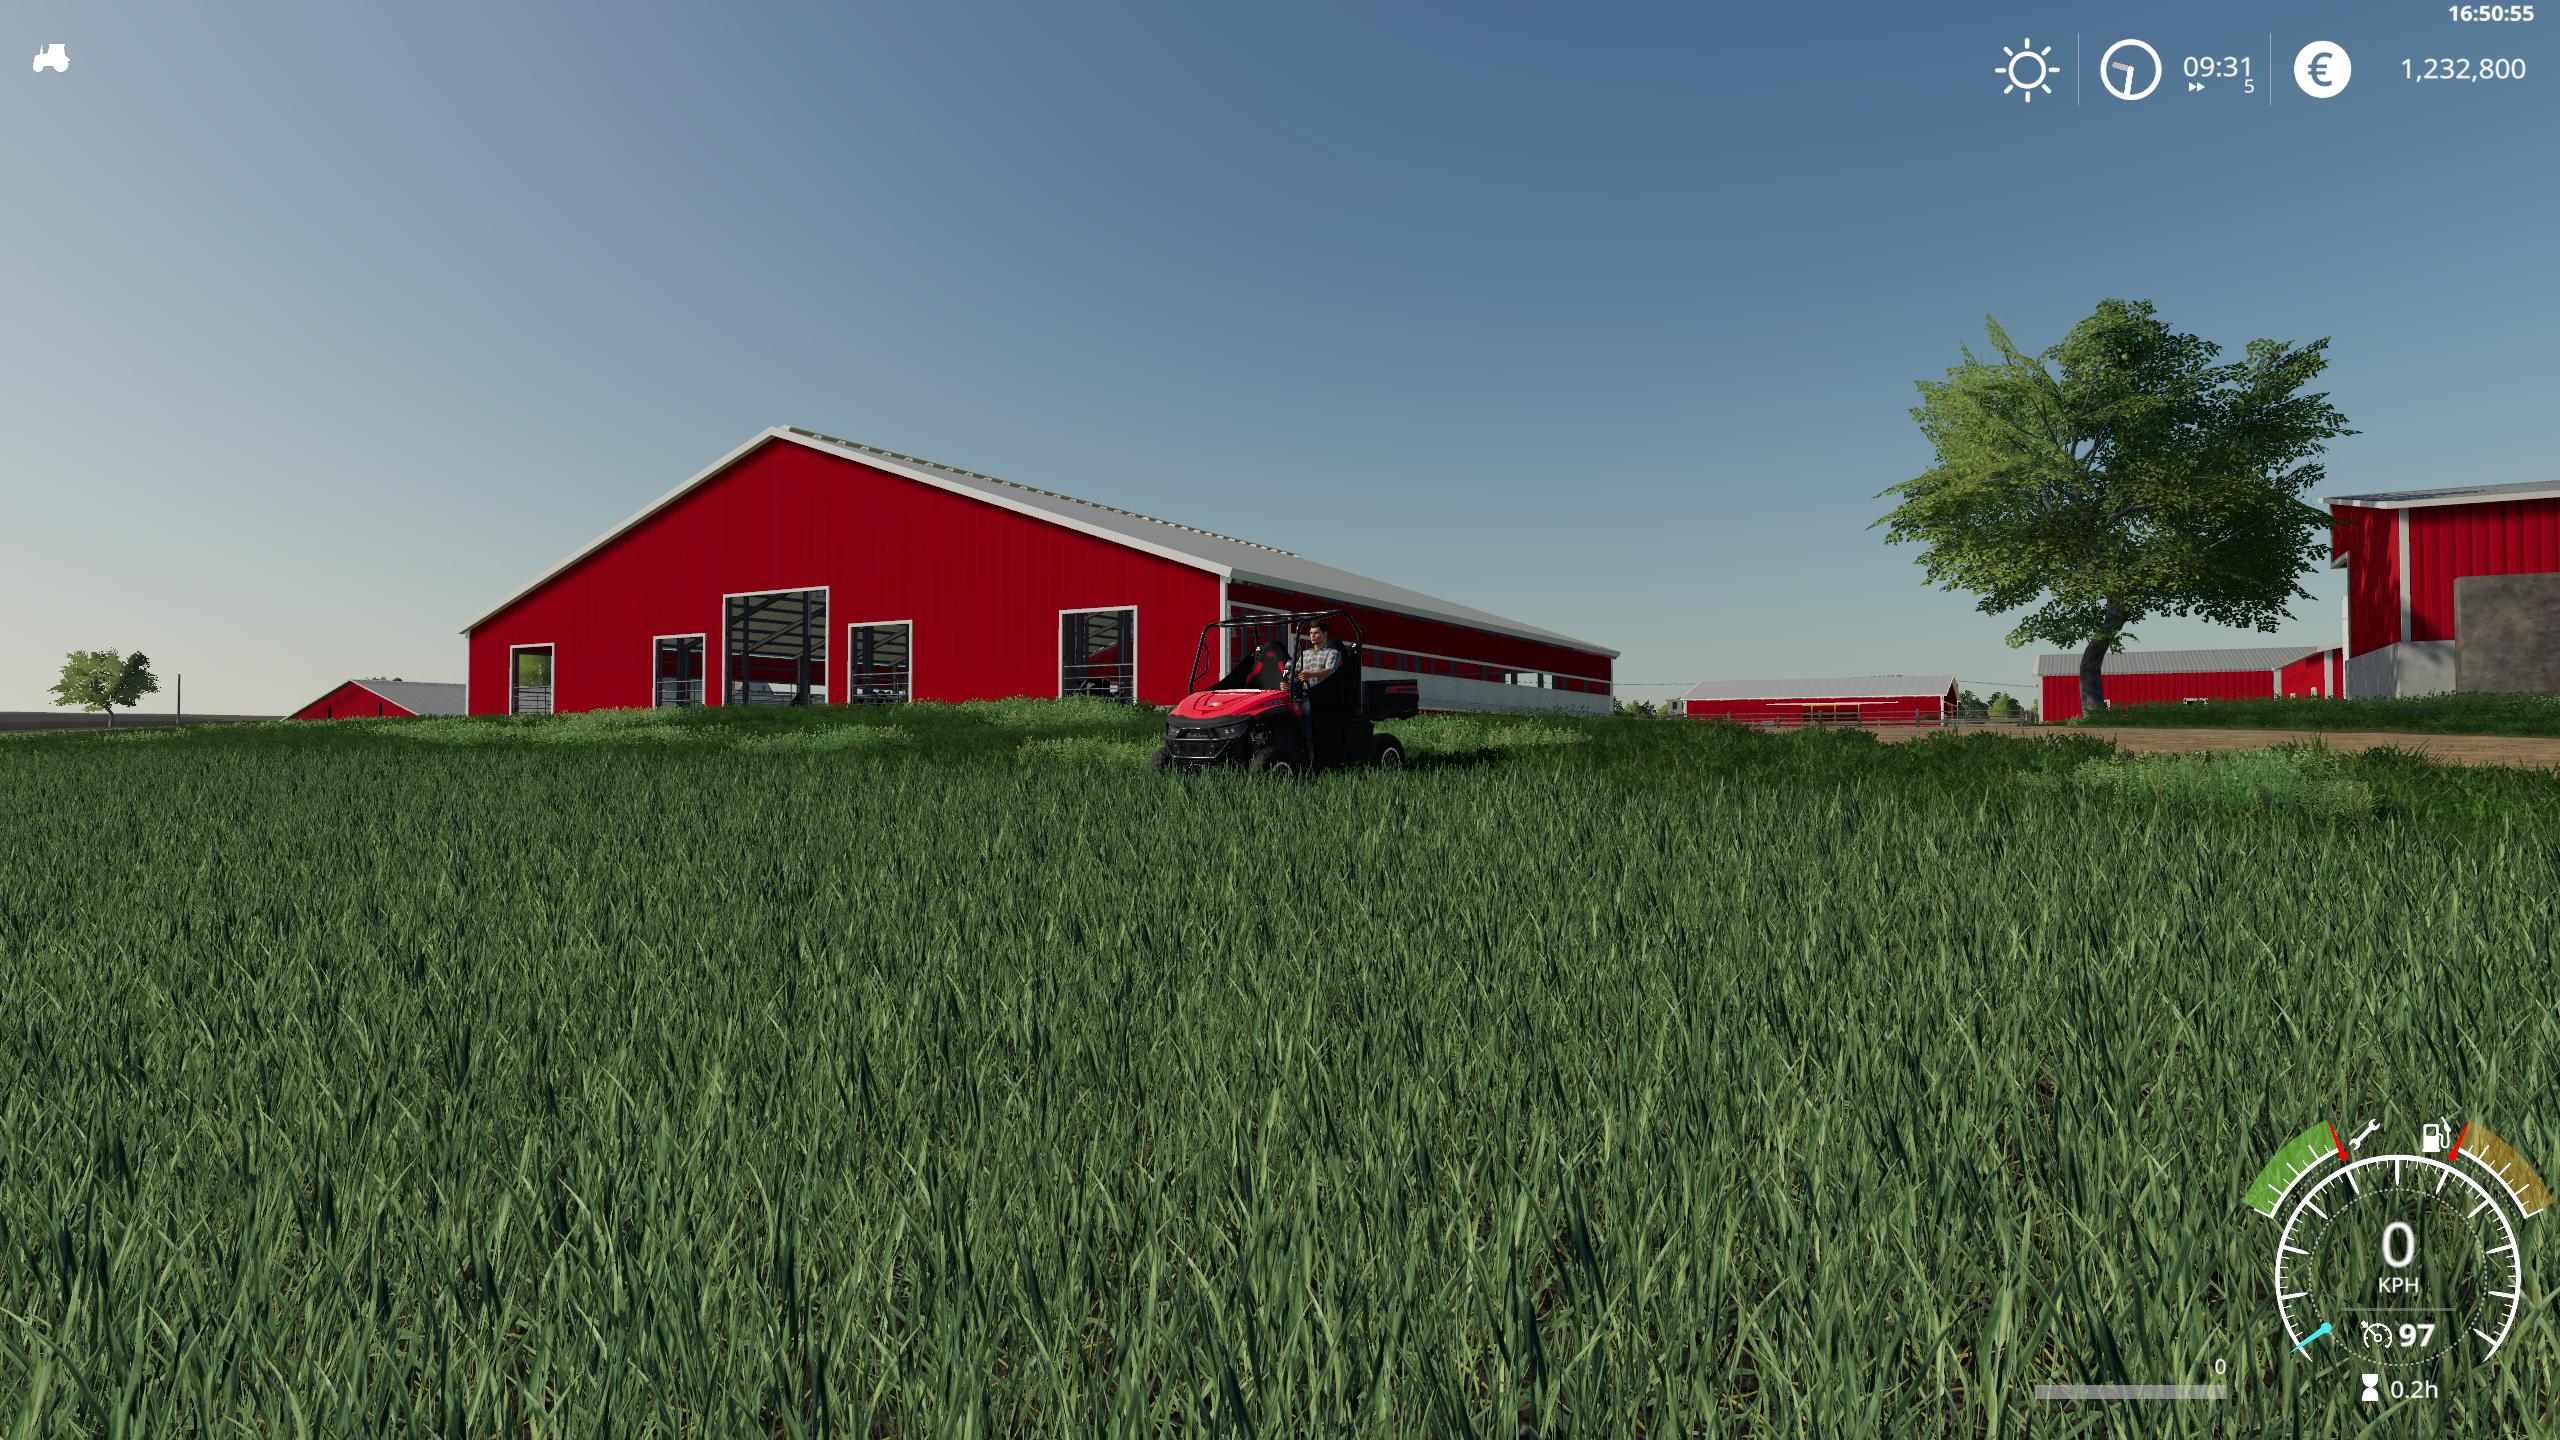 FS19 Autumn Oaks v1 0 Beta - Modhub us